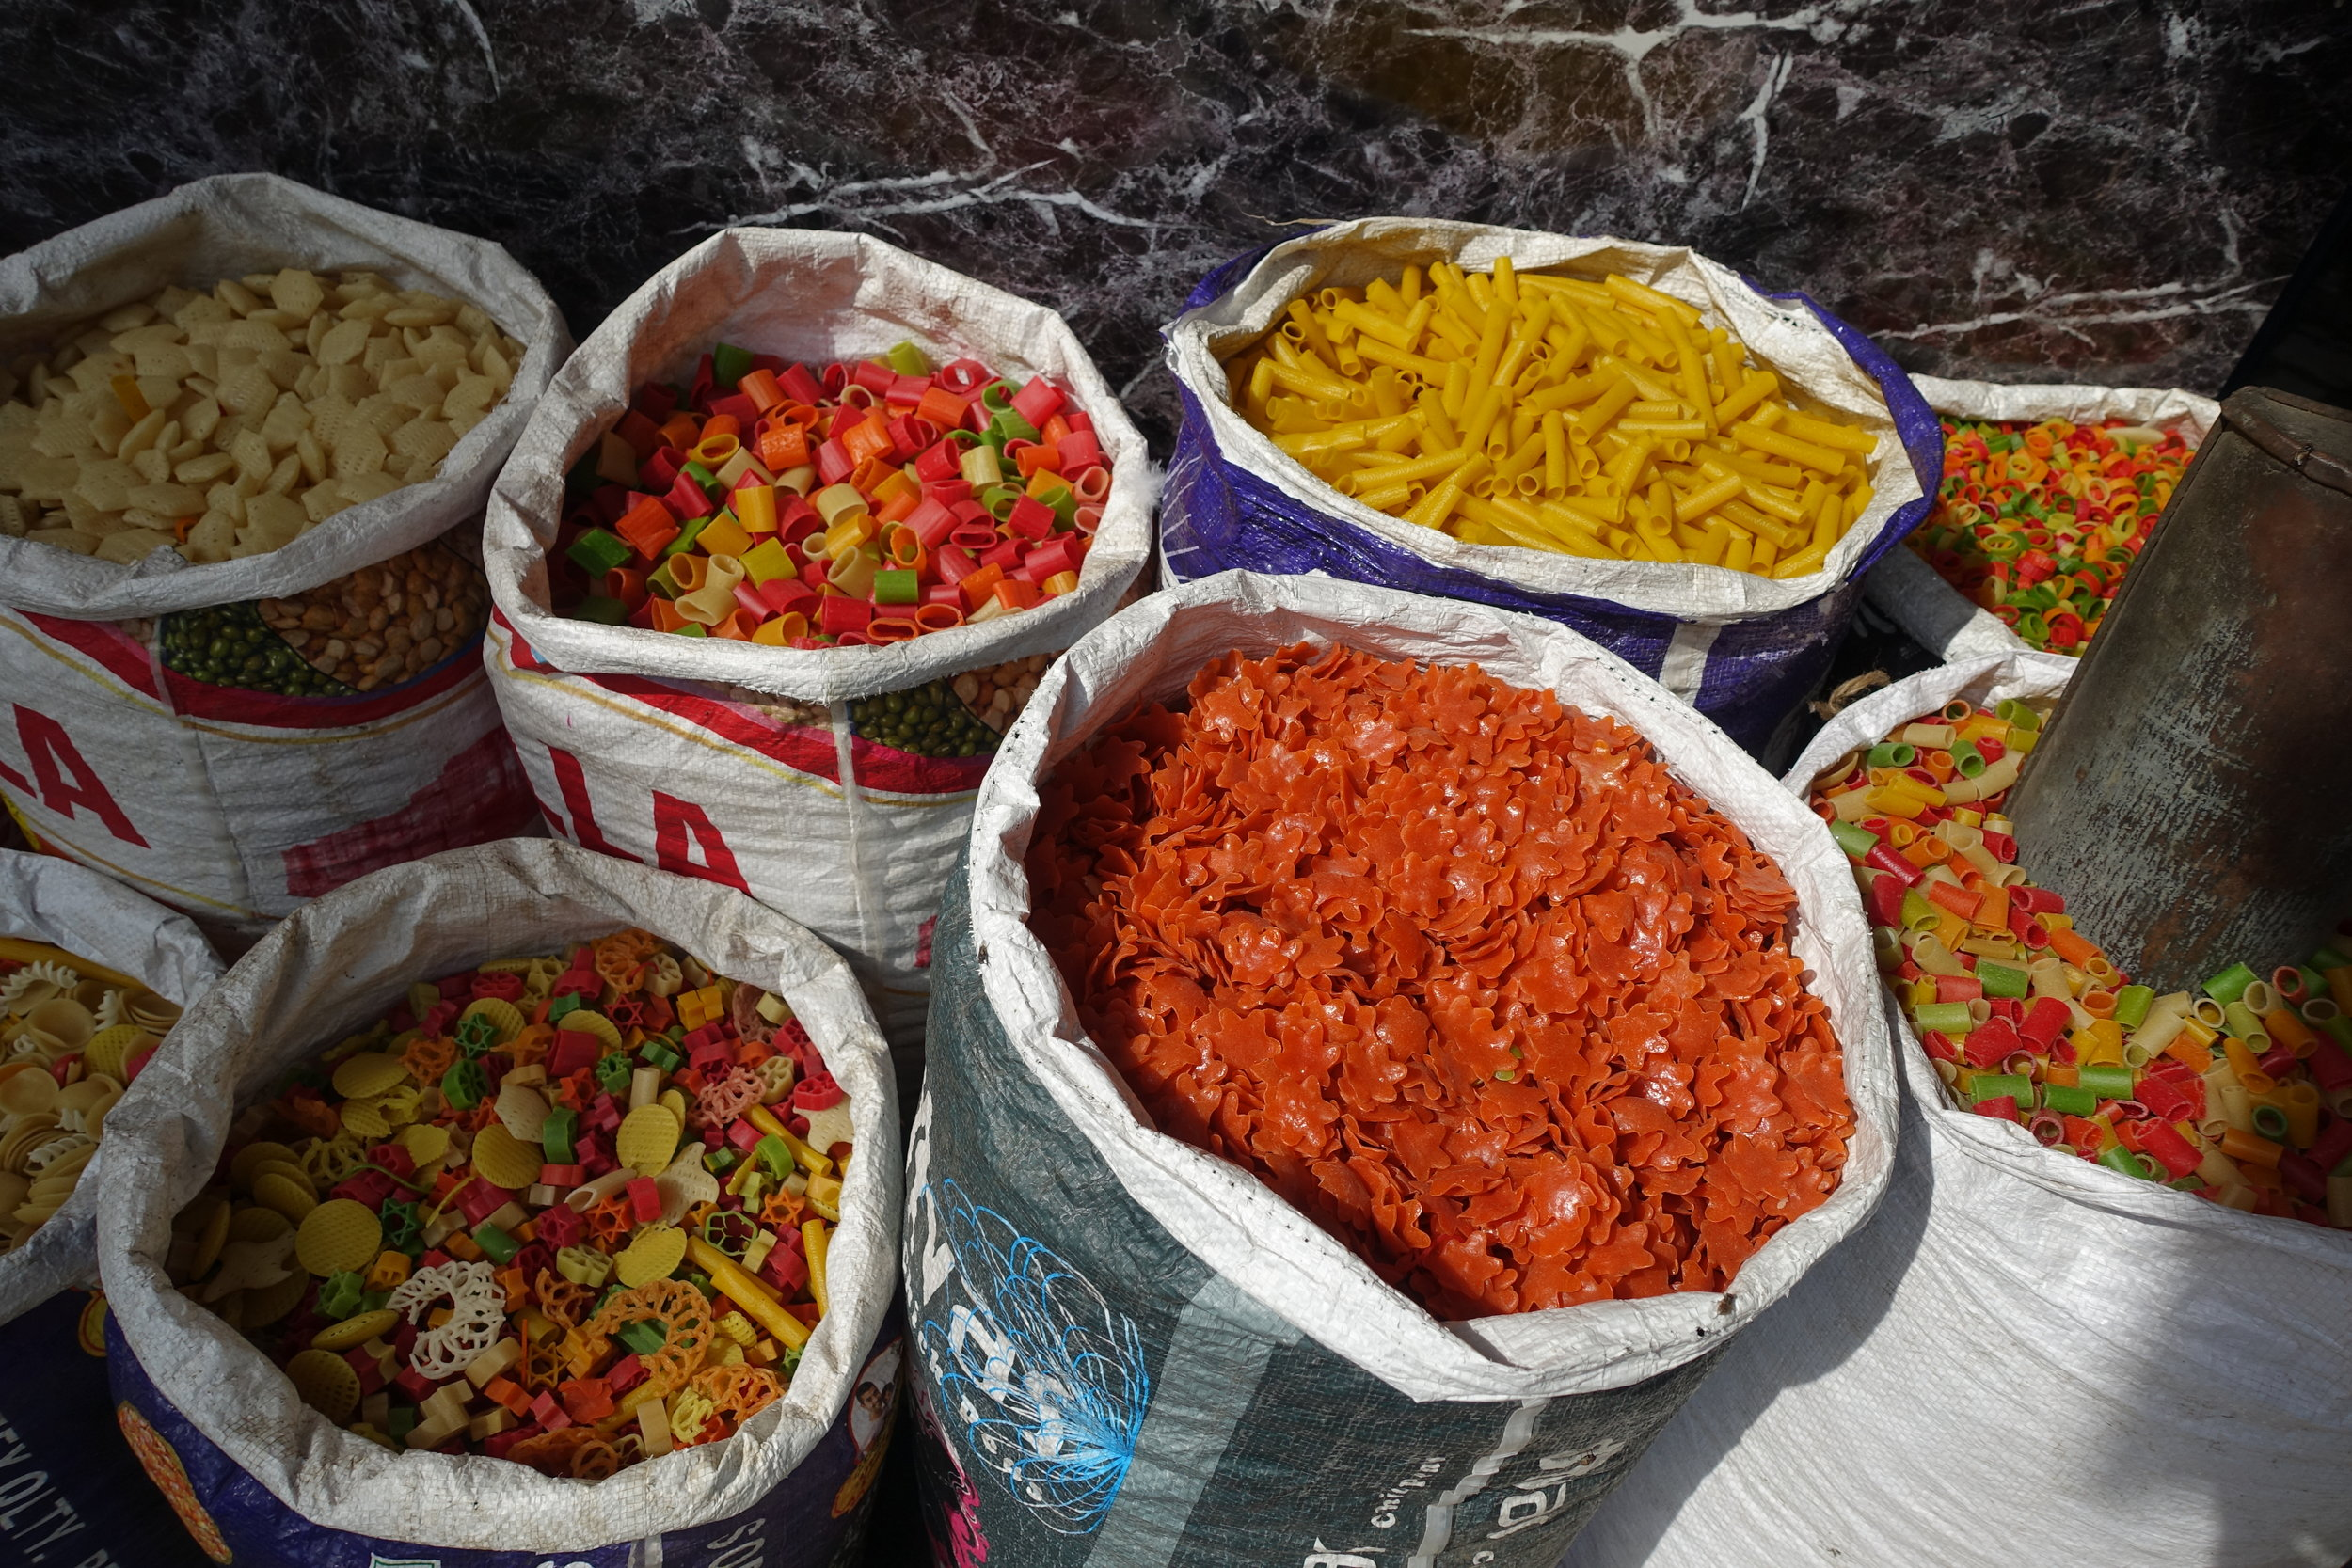 The streets of Amritsar are full of tiny shops selling dry goods, spices, pickles, and sweets with recipes that are generations old.